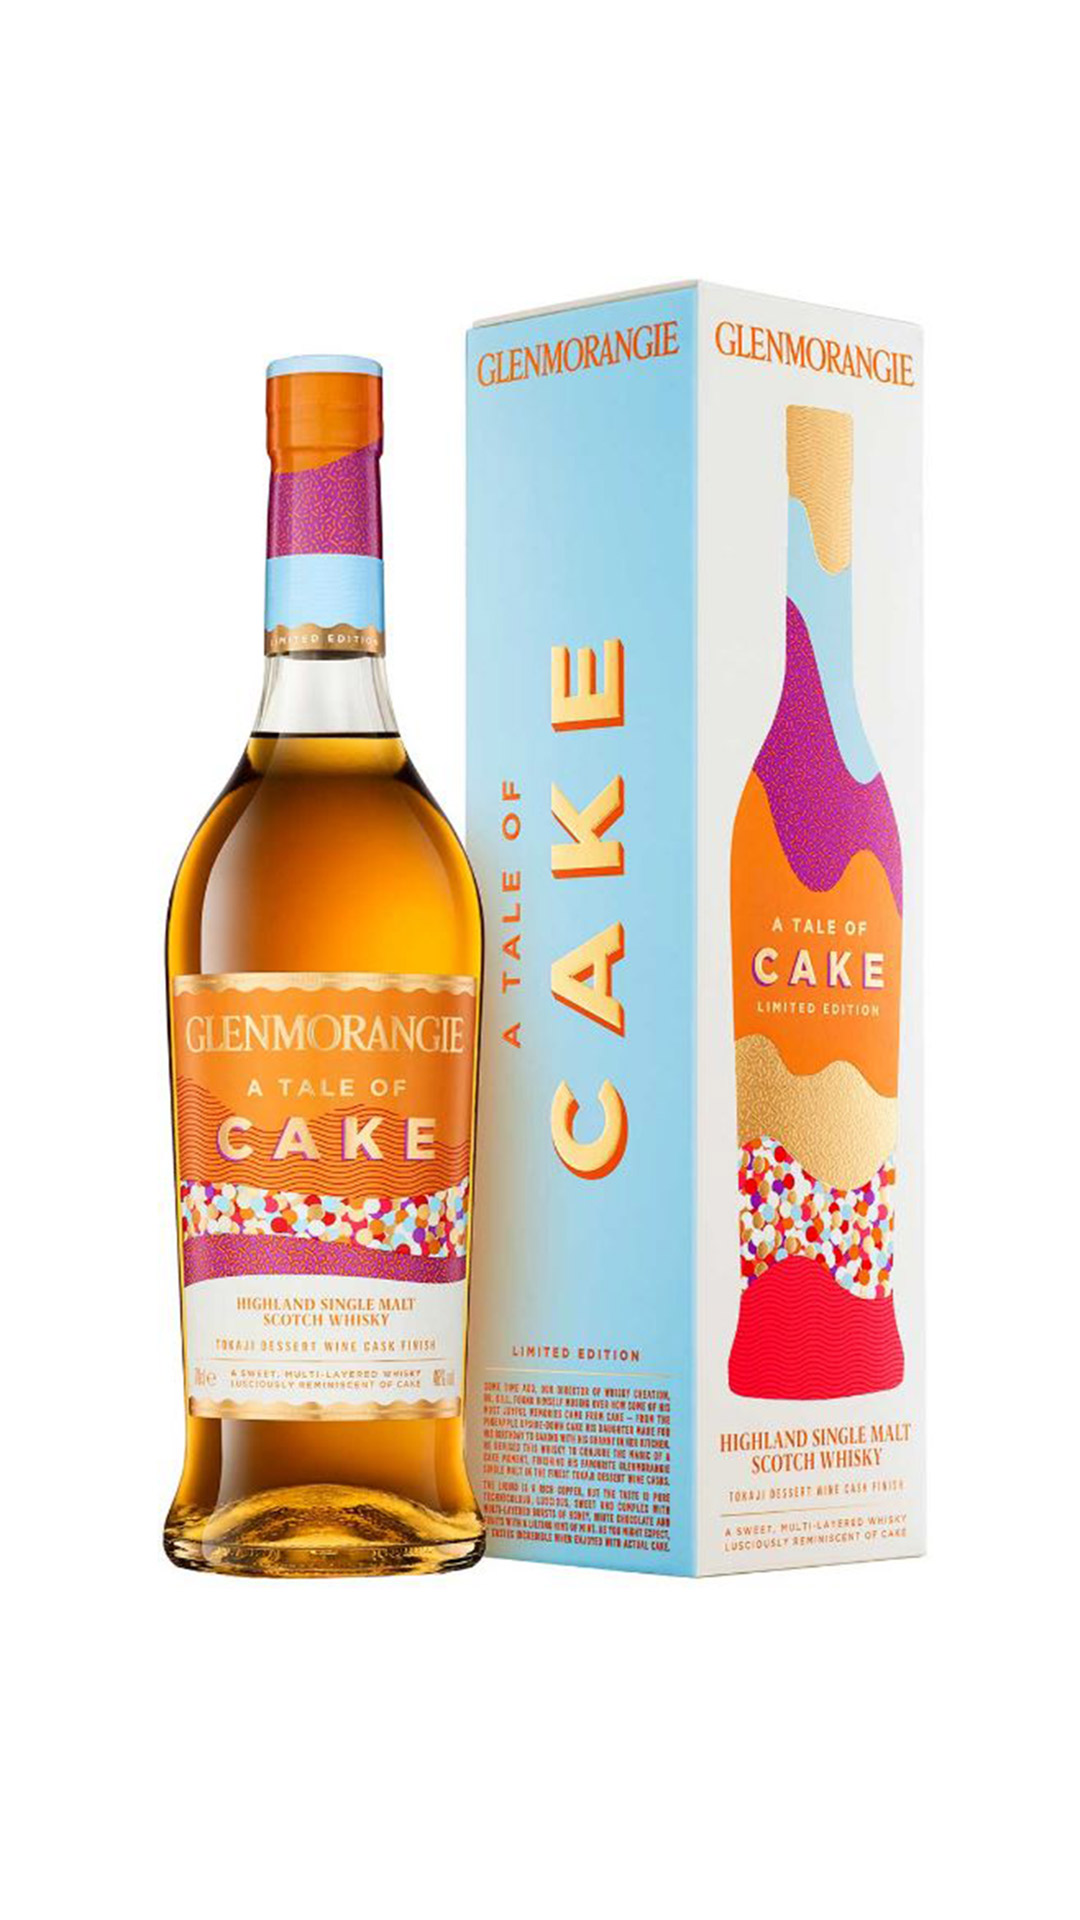 CLOS19Glenmorangie A Tale of Cake (Limited Edition)